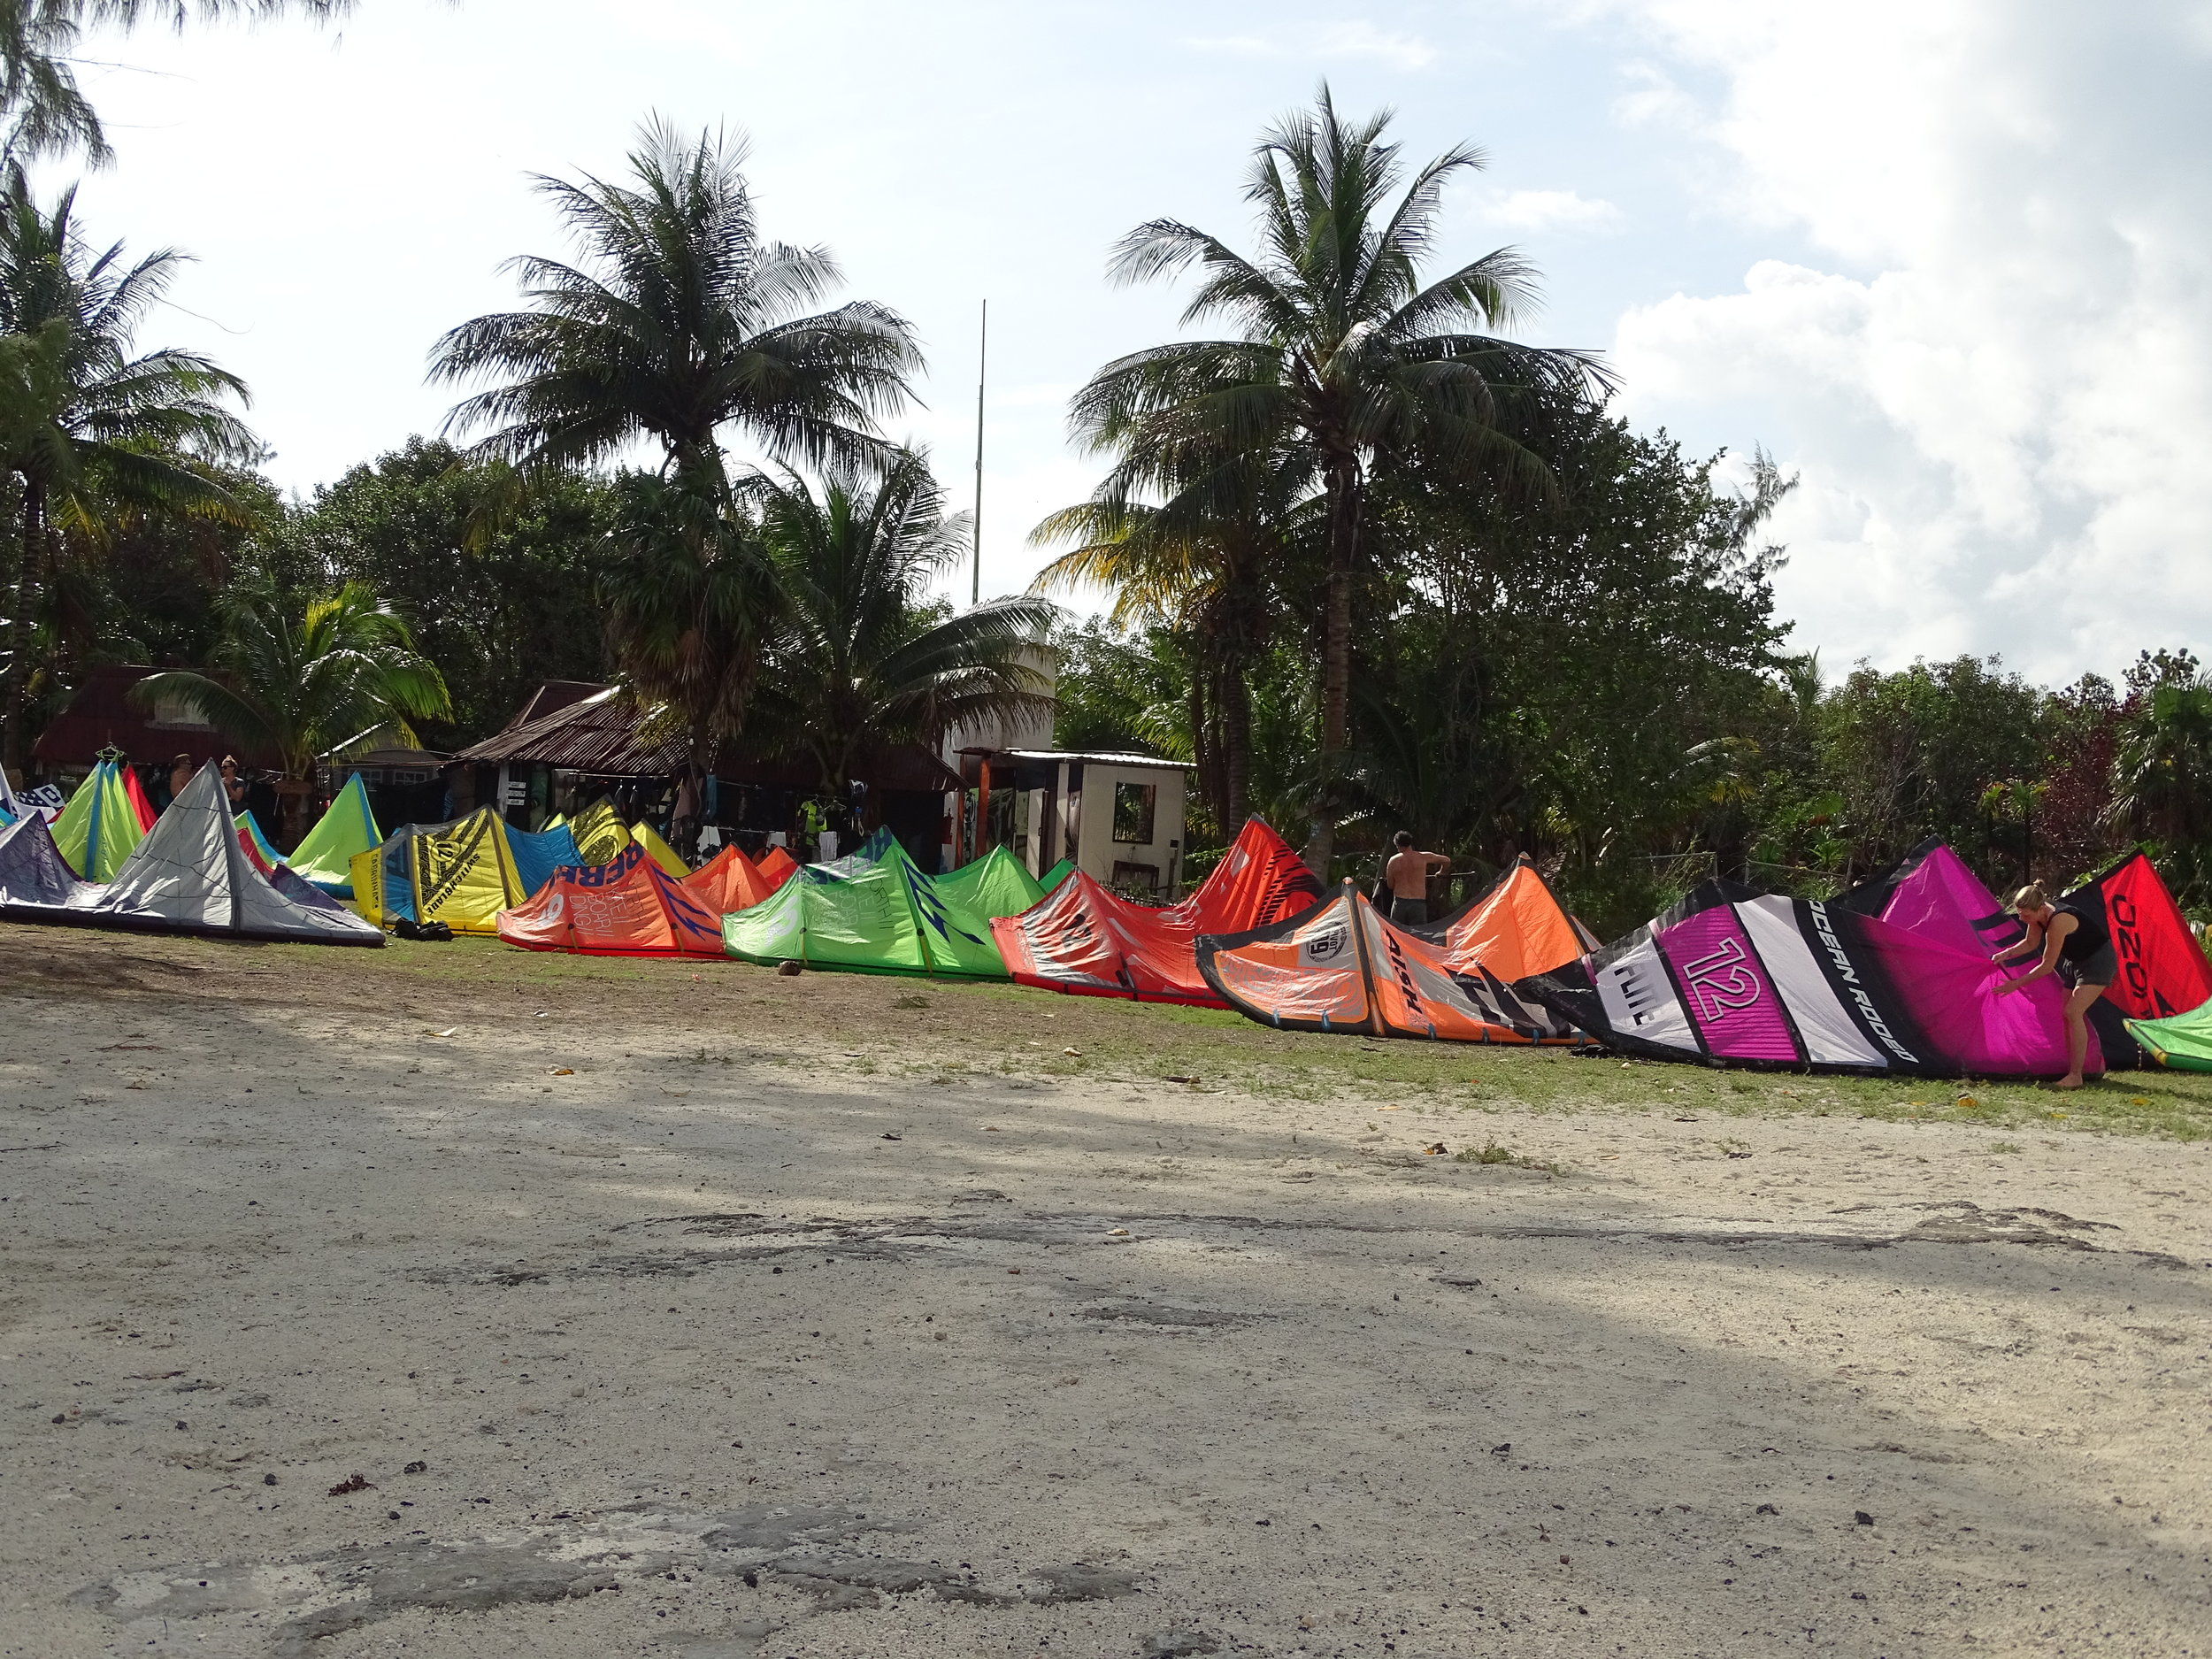 Kites drying after the storm